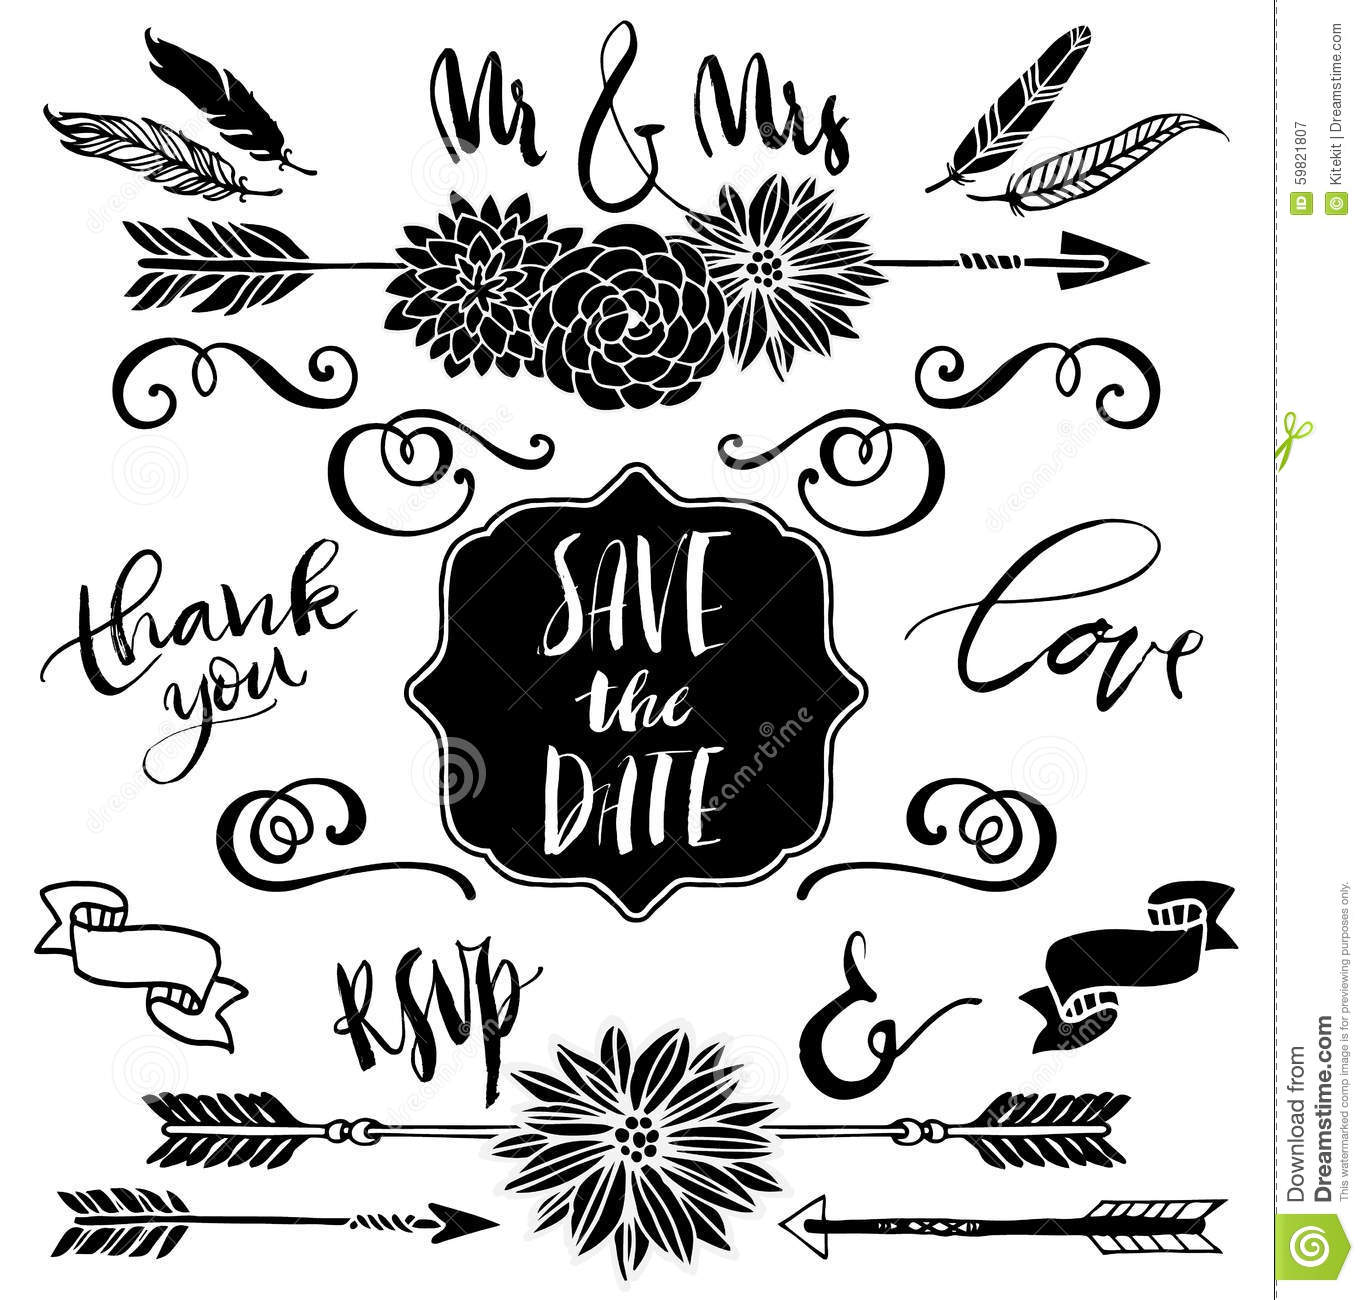 Wedding Graphics: Wedding Graphic Set, Arrows, Flowers, Curls, Ribbons And